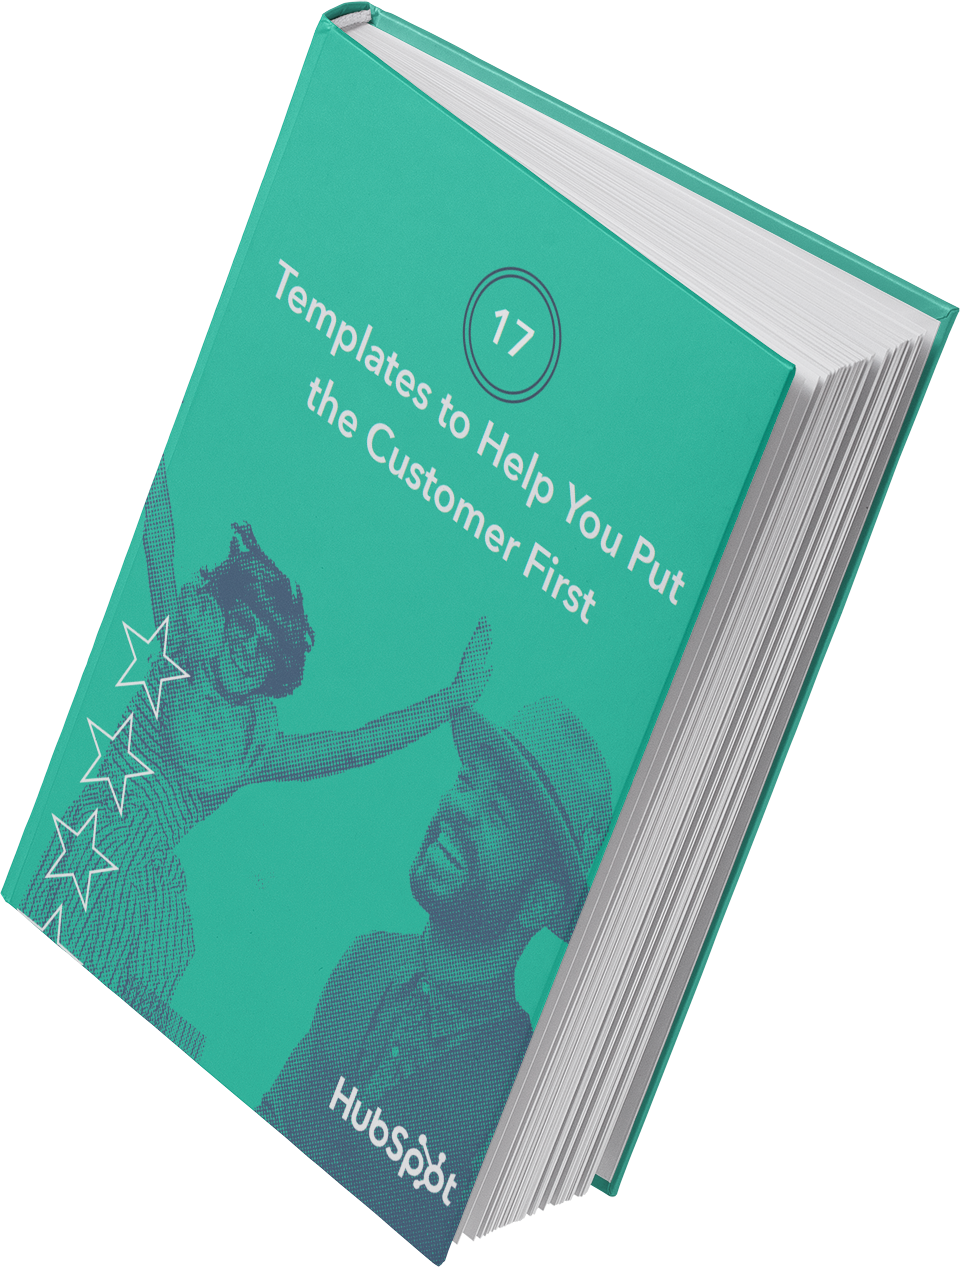 image of hubspot's templates to help readers put the customer first